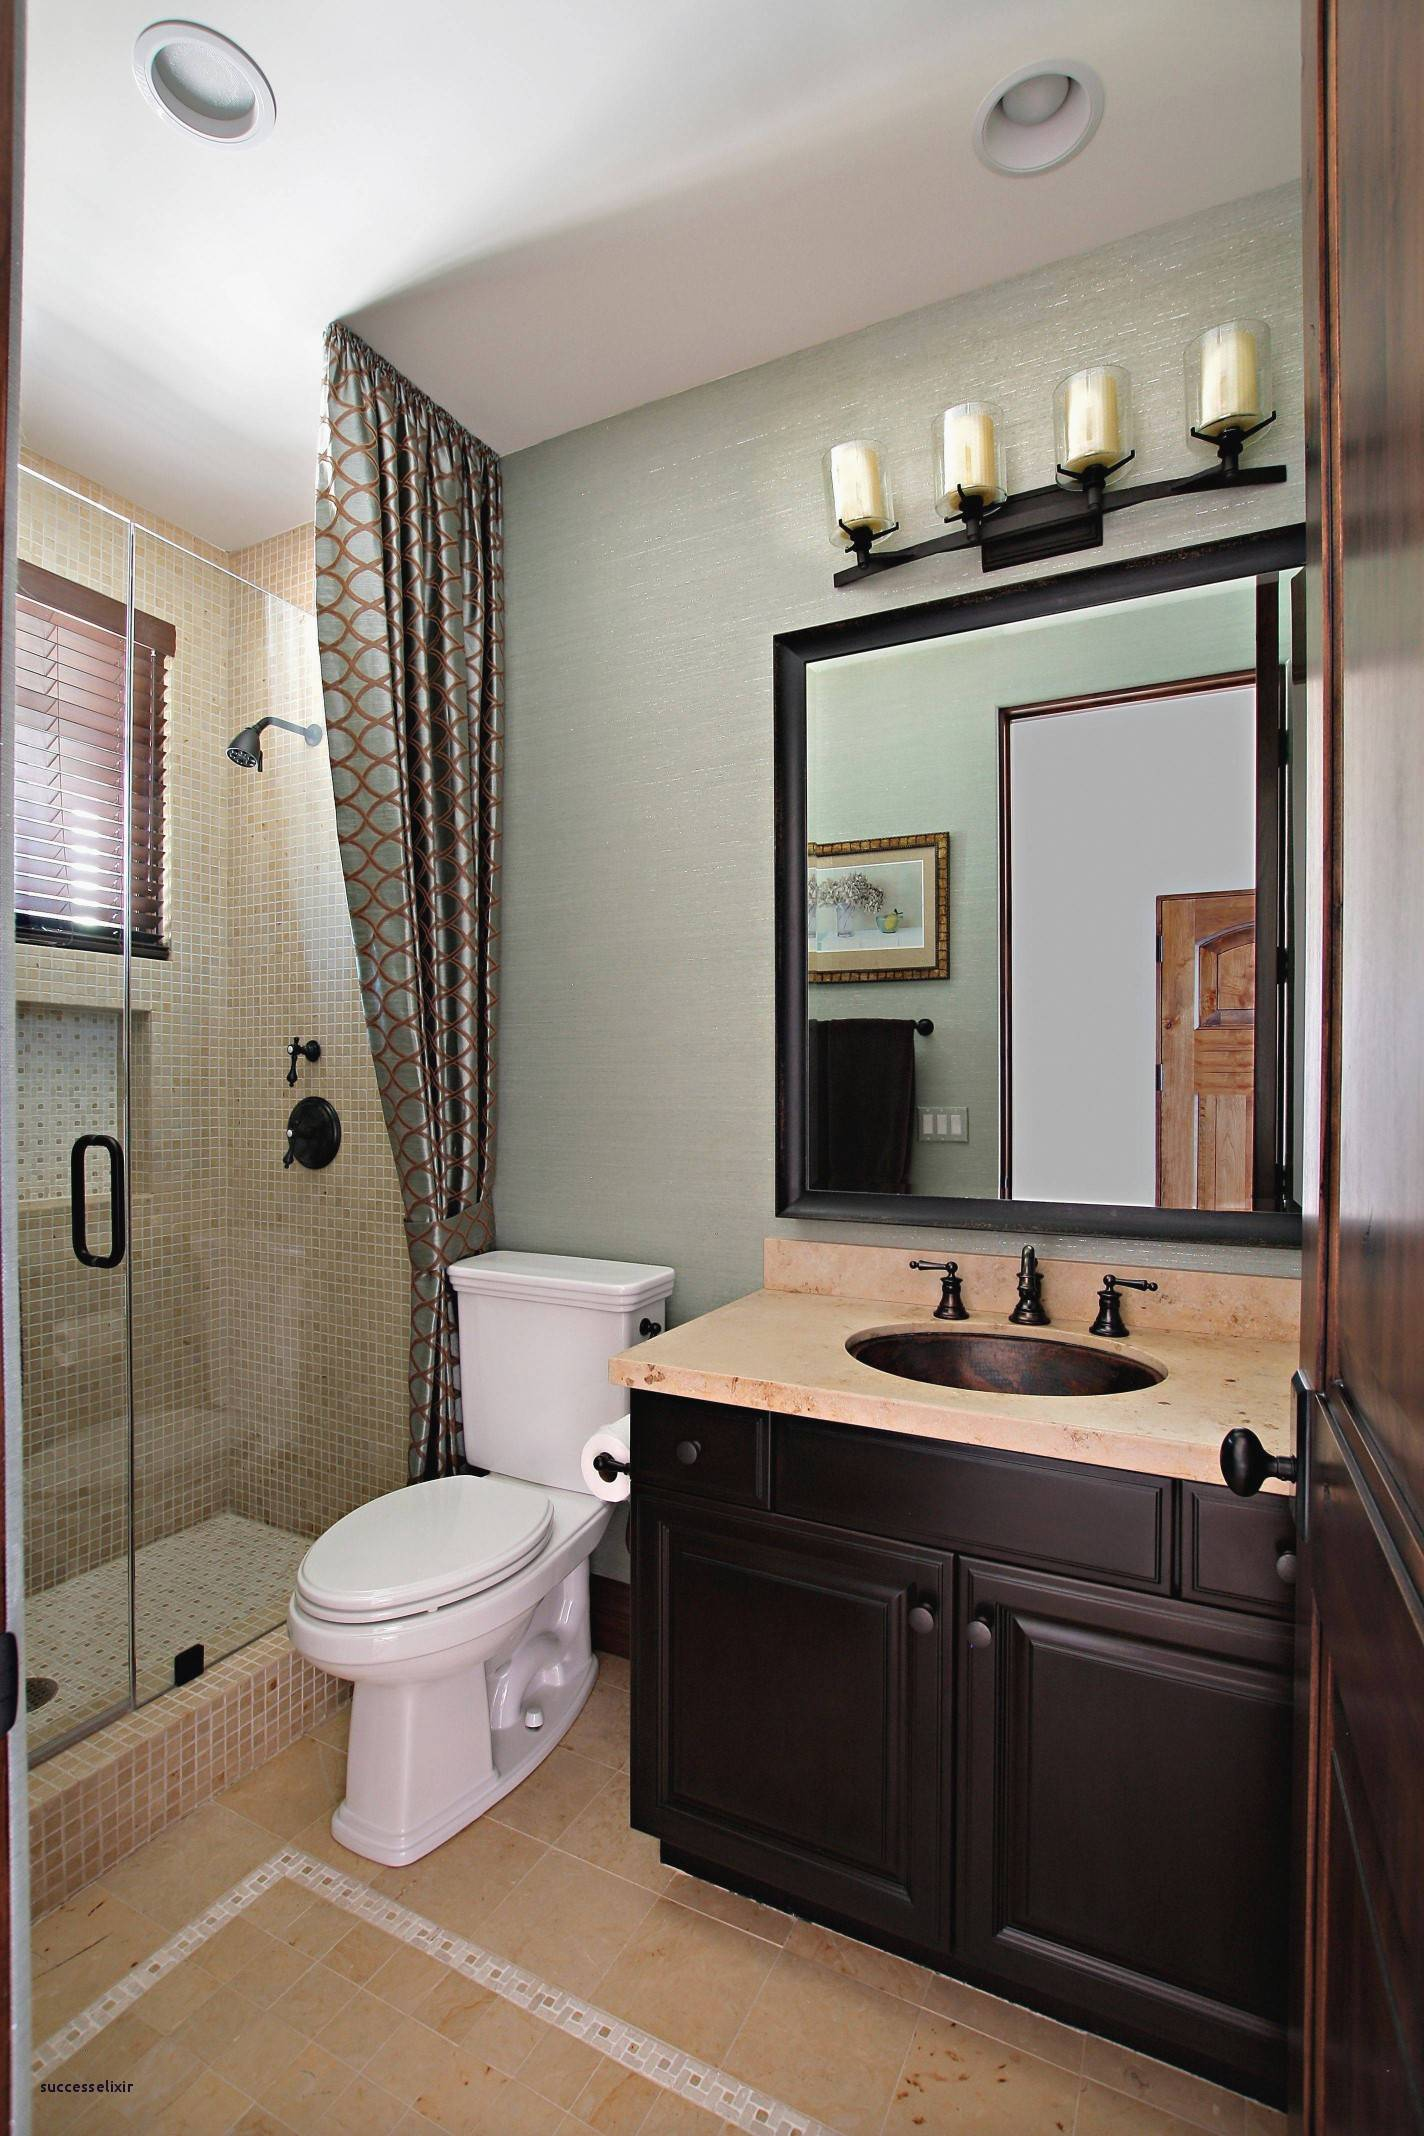 small wet room design ideas best of 32 wet room bathroom design ideas norwin home design of small wet room design ideas